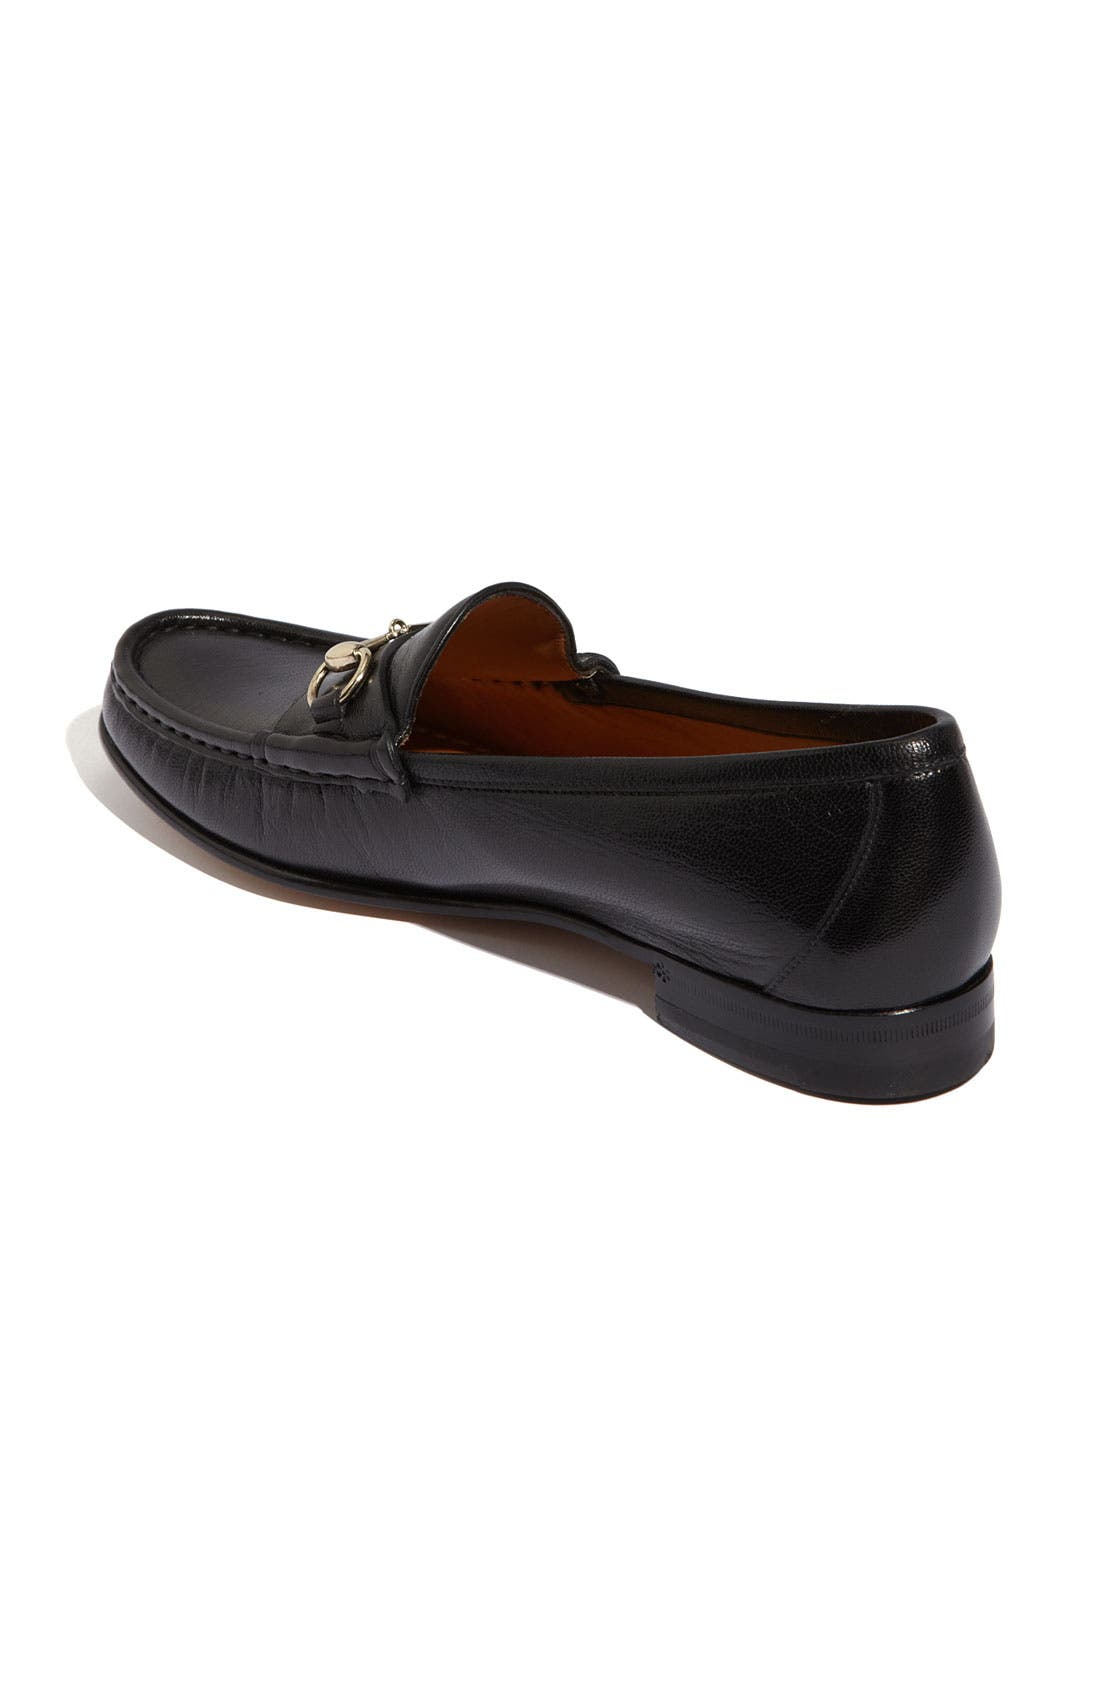 Alternate Image 2  - Gucci 'Clyde' Leather Loafer